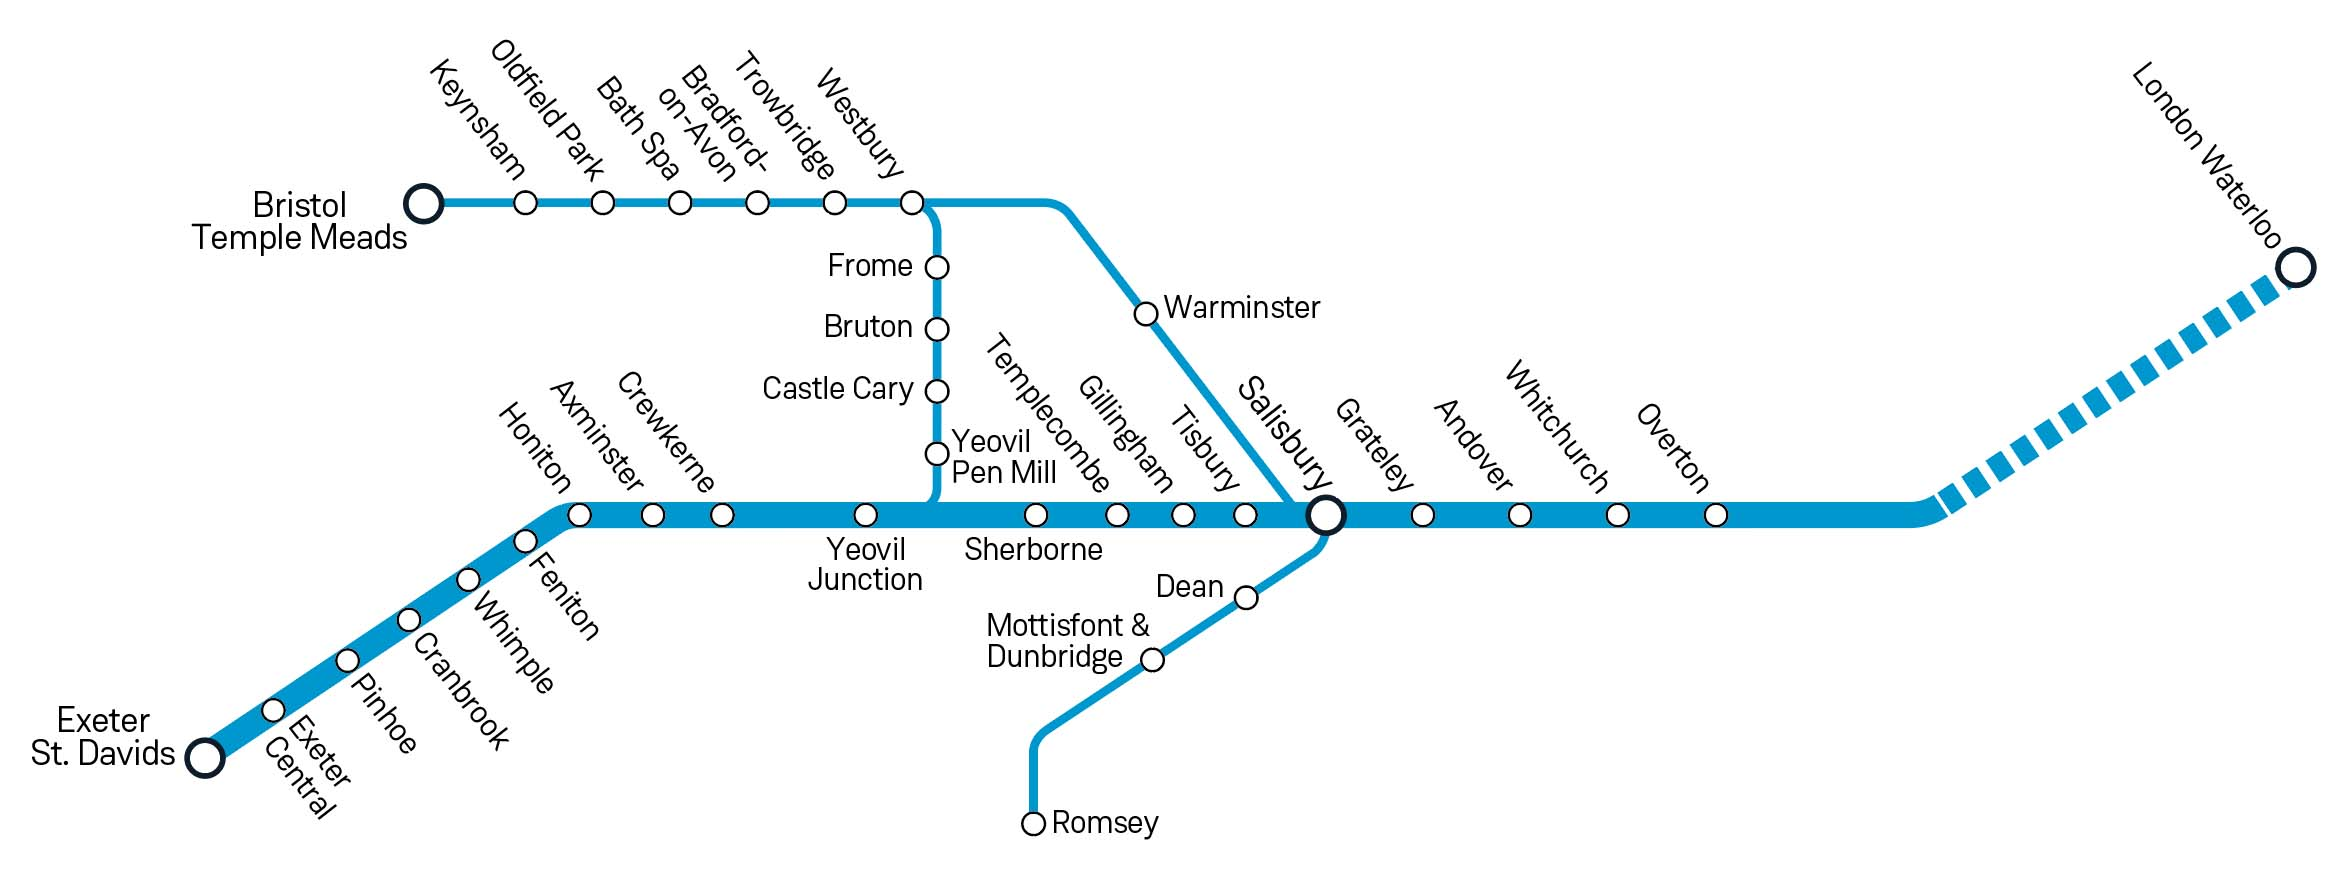 West of England to Waterloo Advance Ticket Map